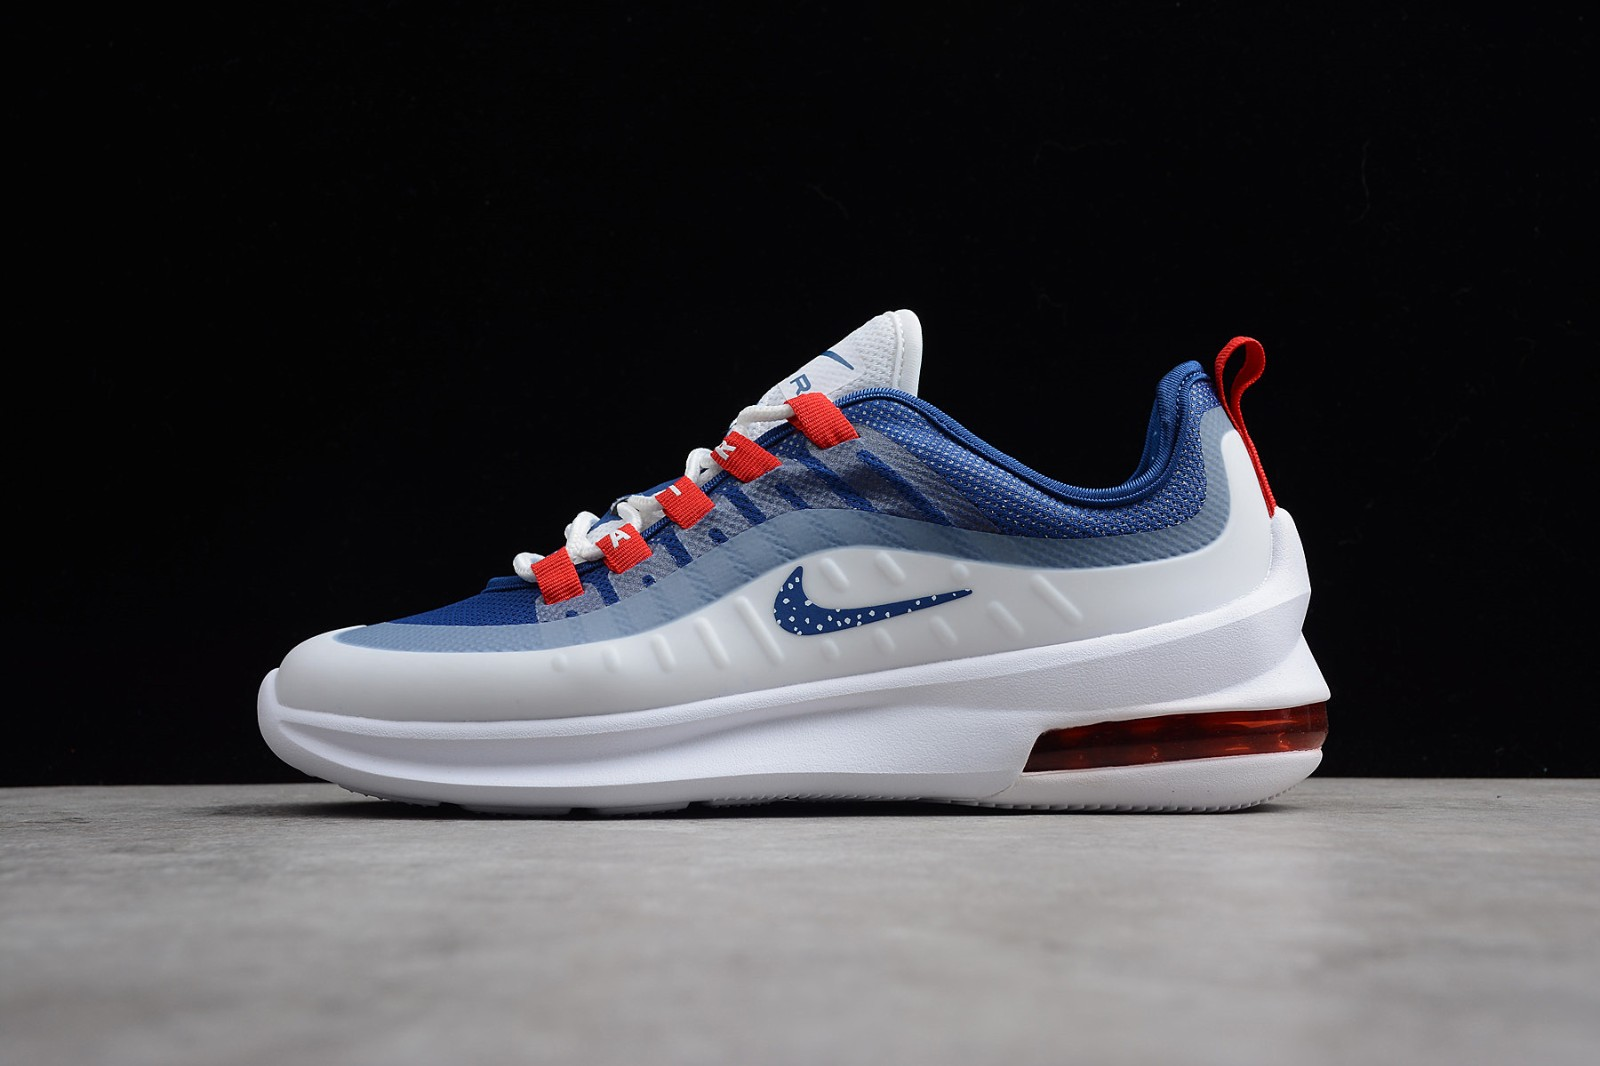 2020 Nike Air Max Axis Casual White Gym Red Blue Aa2146